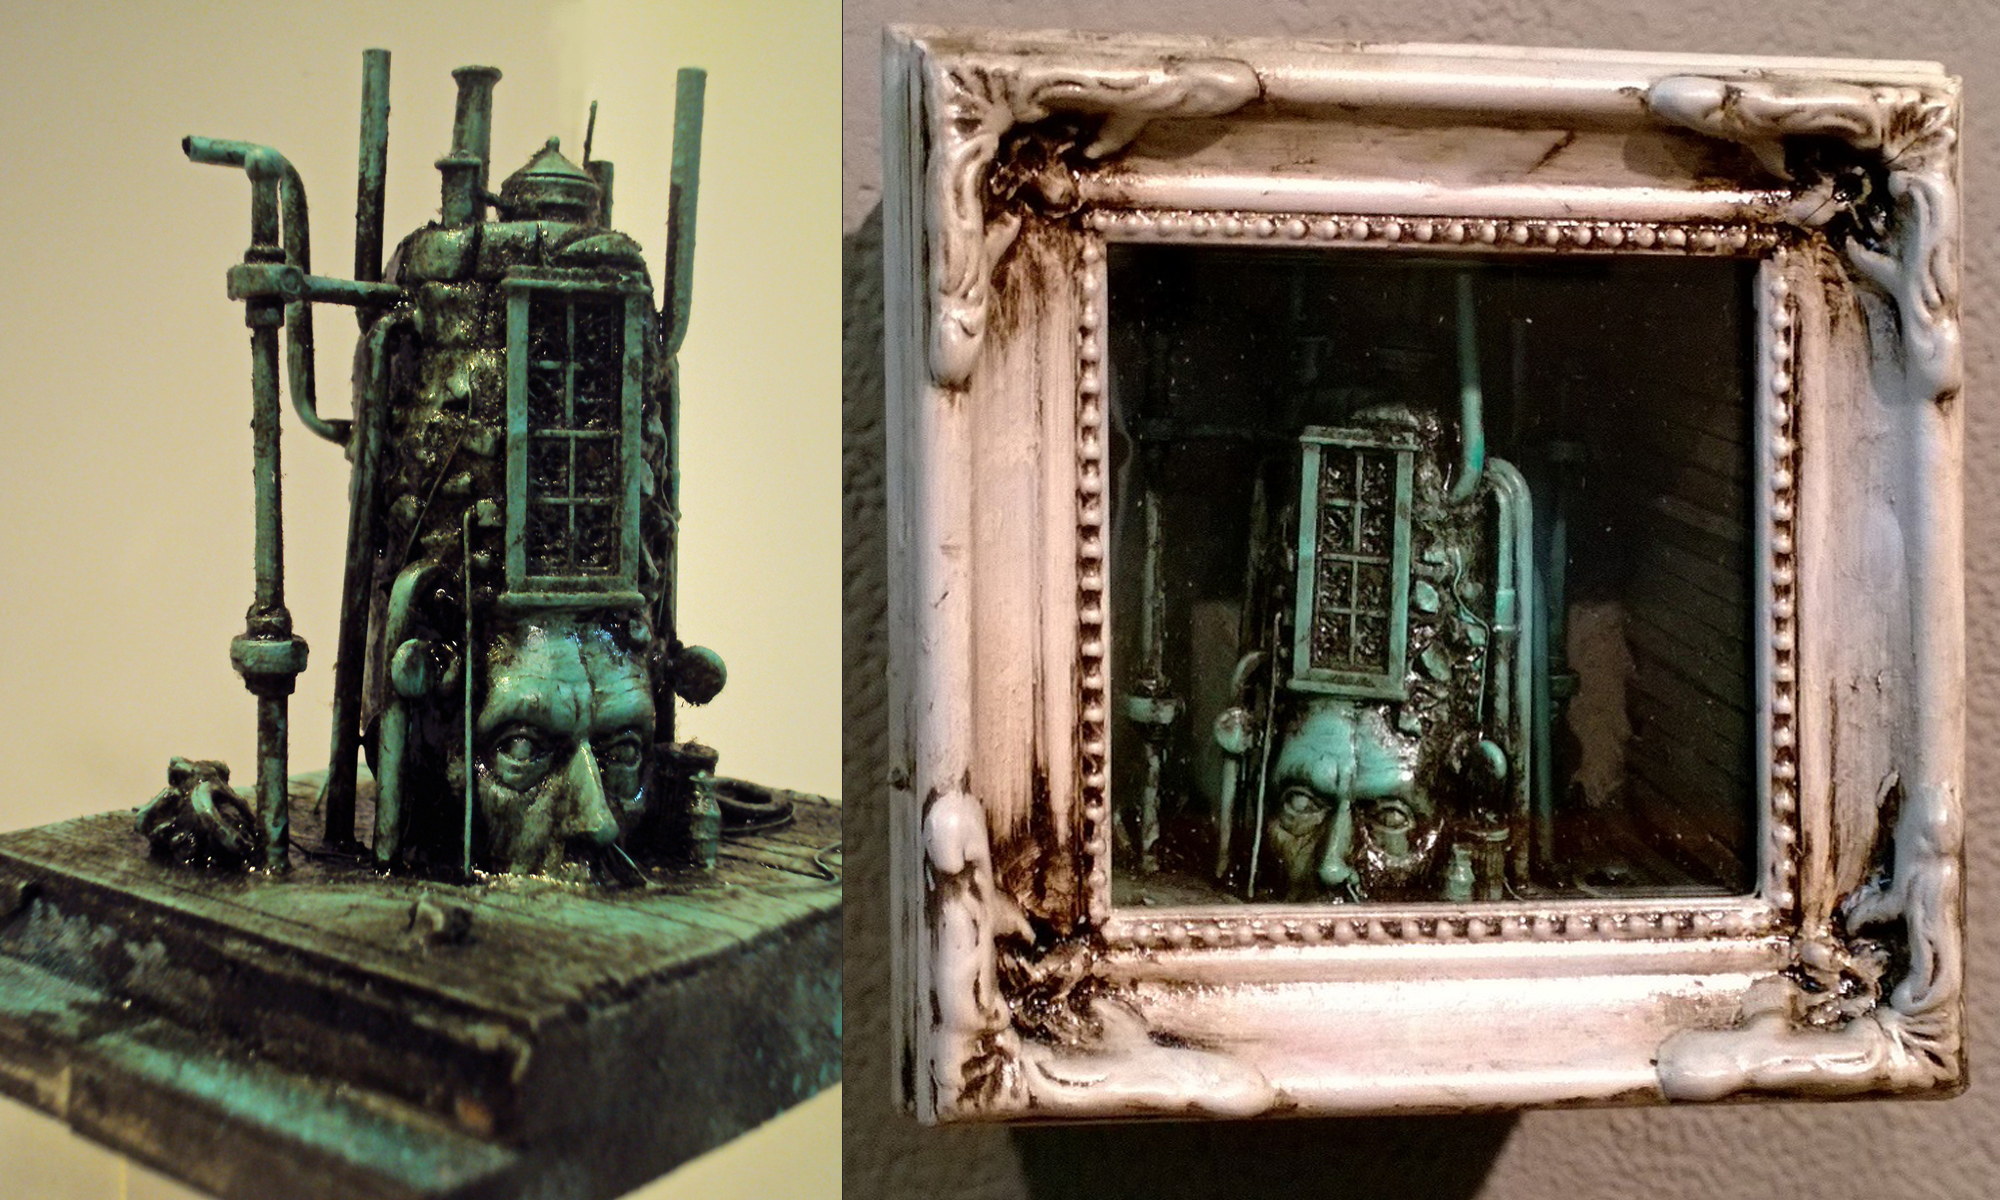 2.5 x 2.5 x 3 in. assemblage $400.00